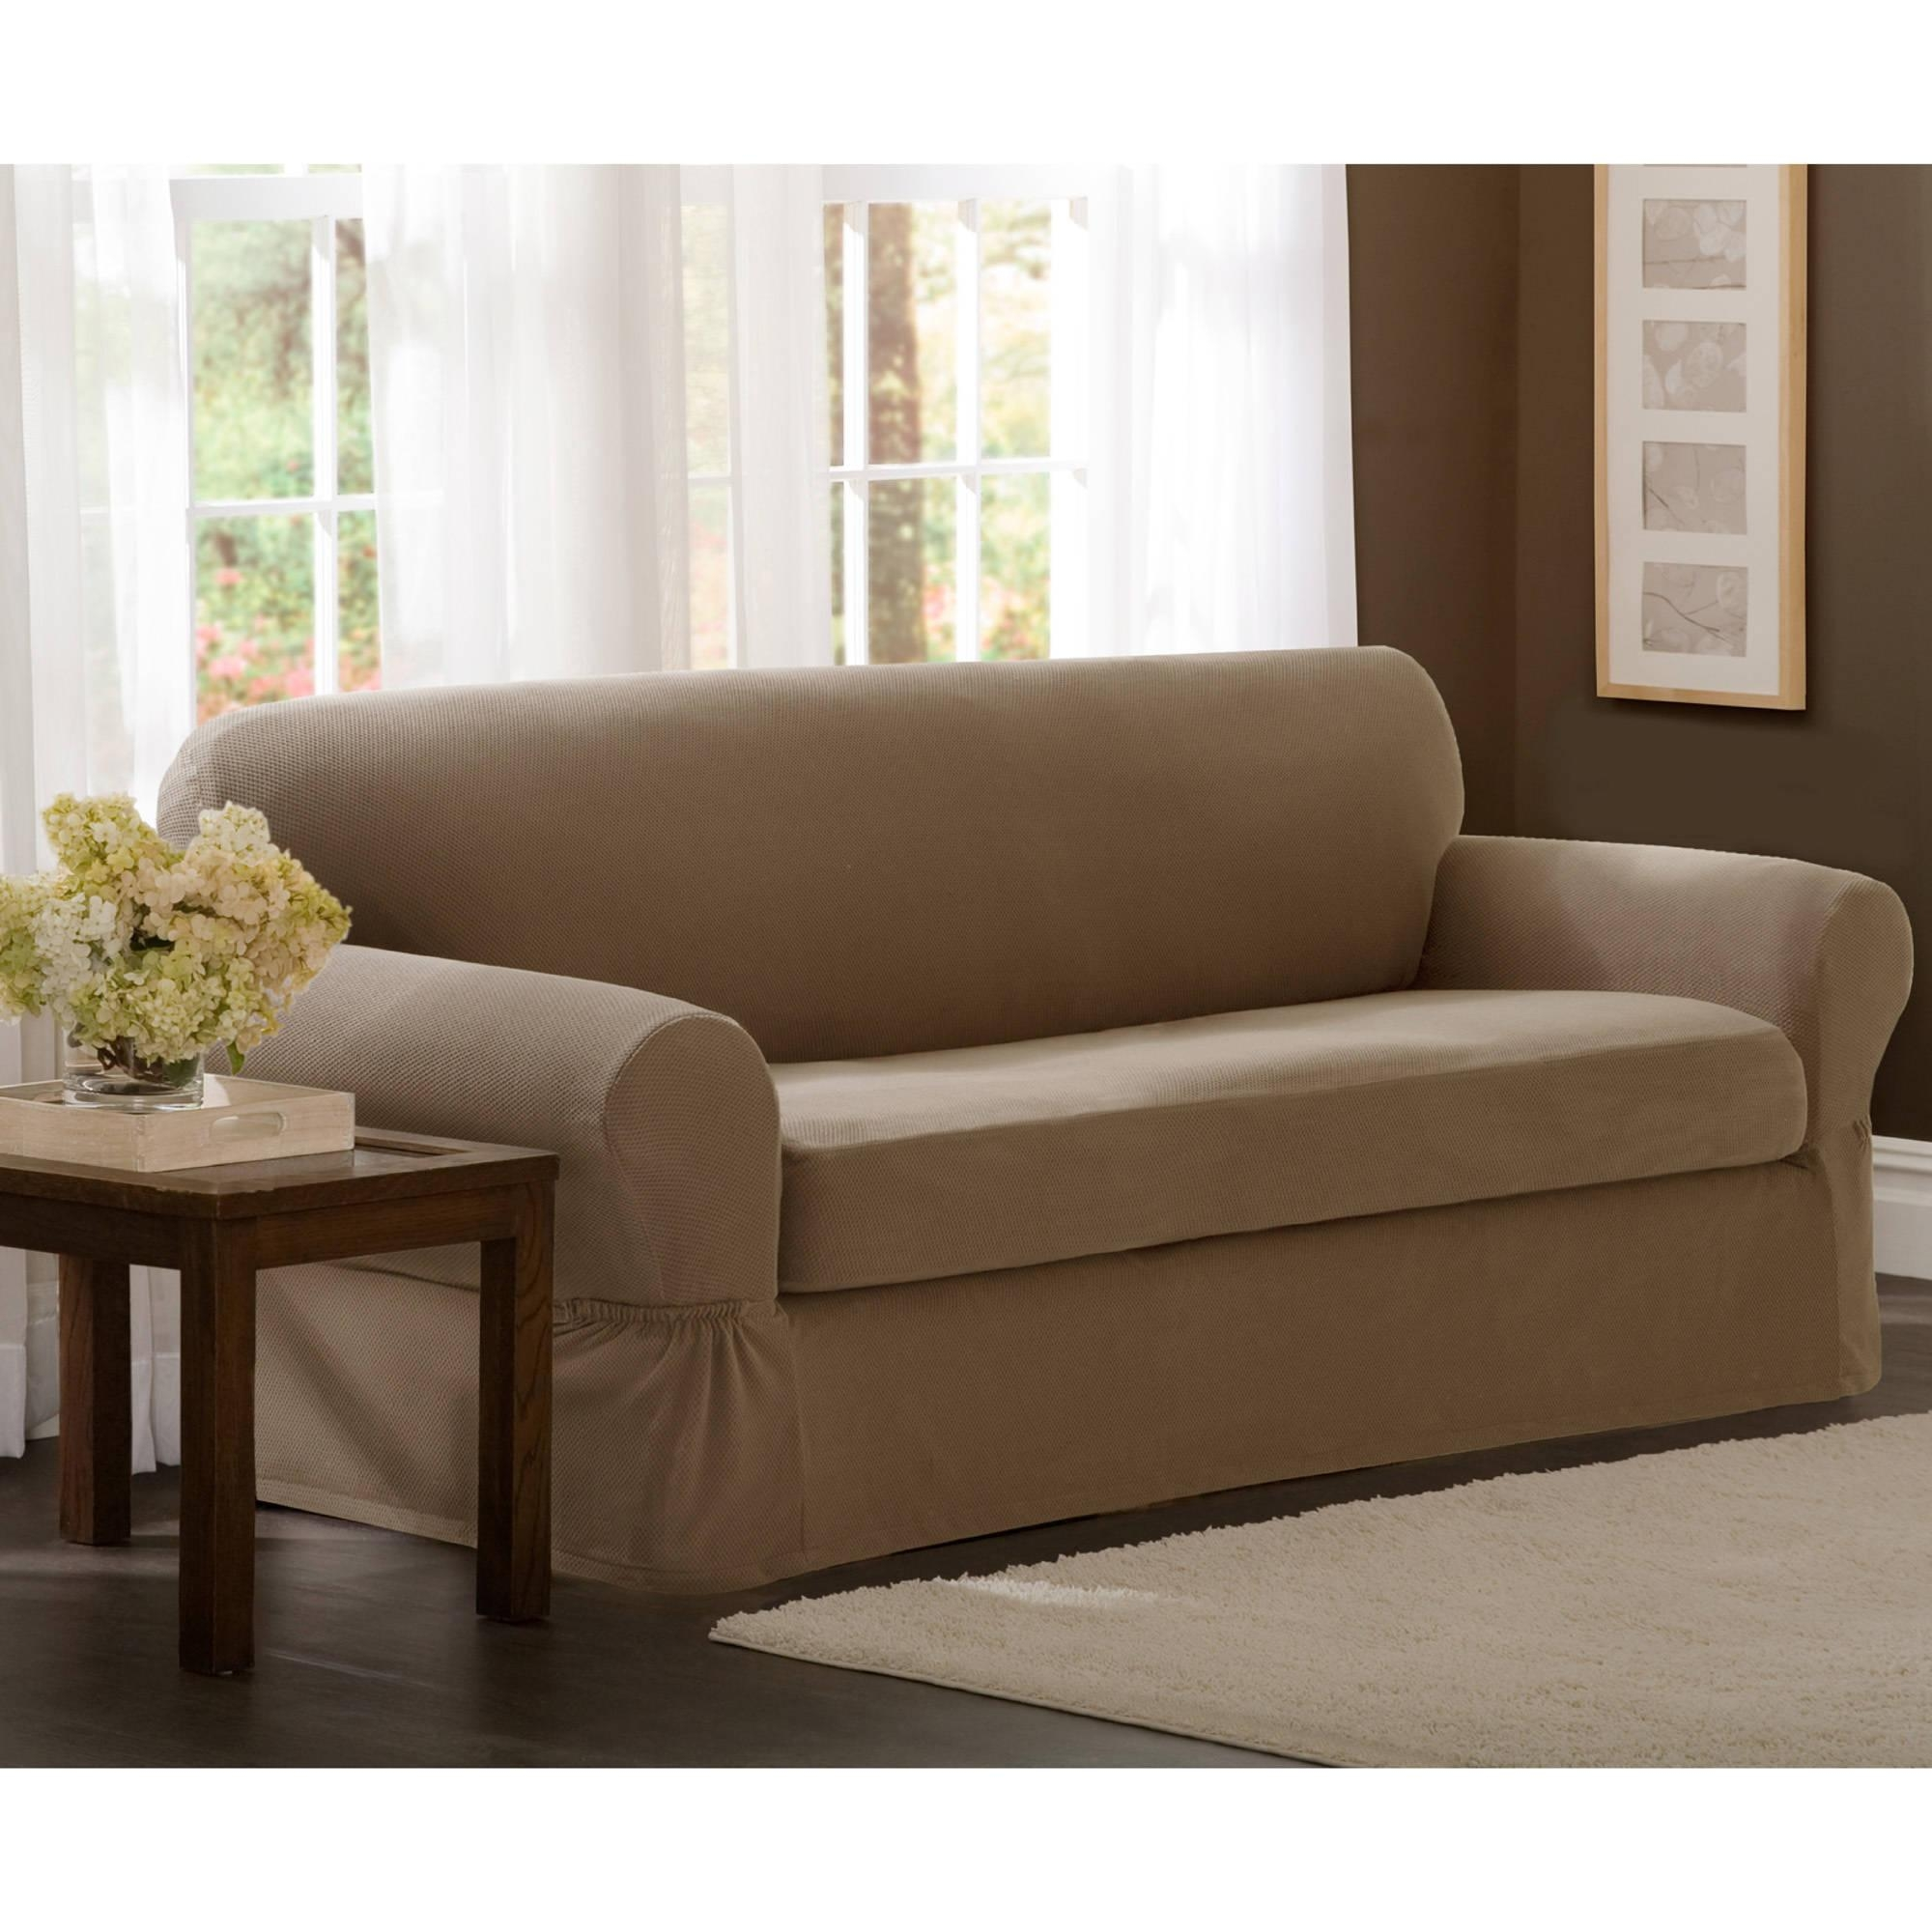 Maytex Stretch 2 Piece Sofa Slipcover – Walmart Intended For Stretch Slipcovers For Sofas (Image 11 of 20)